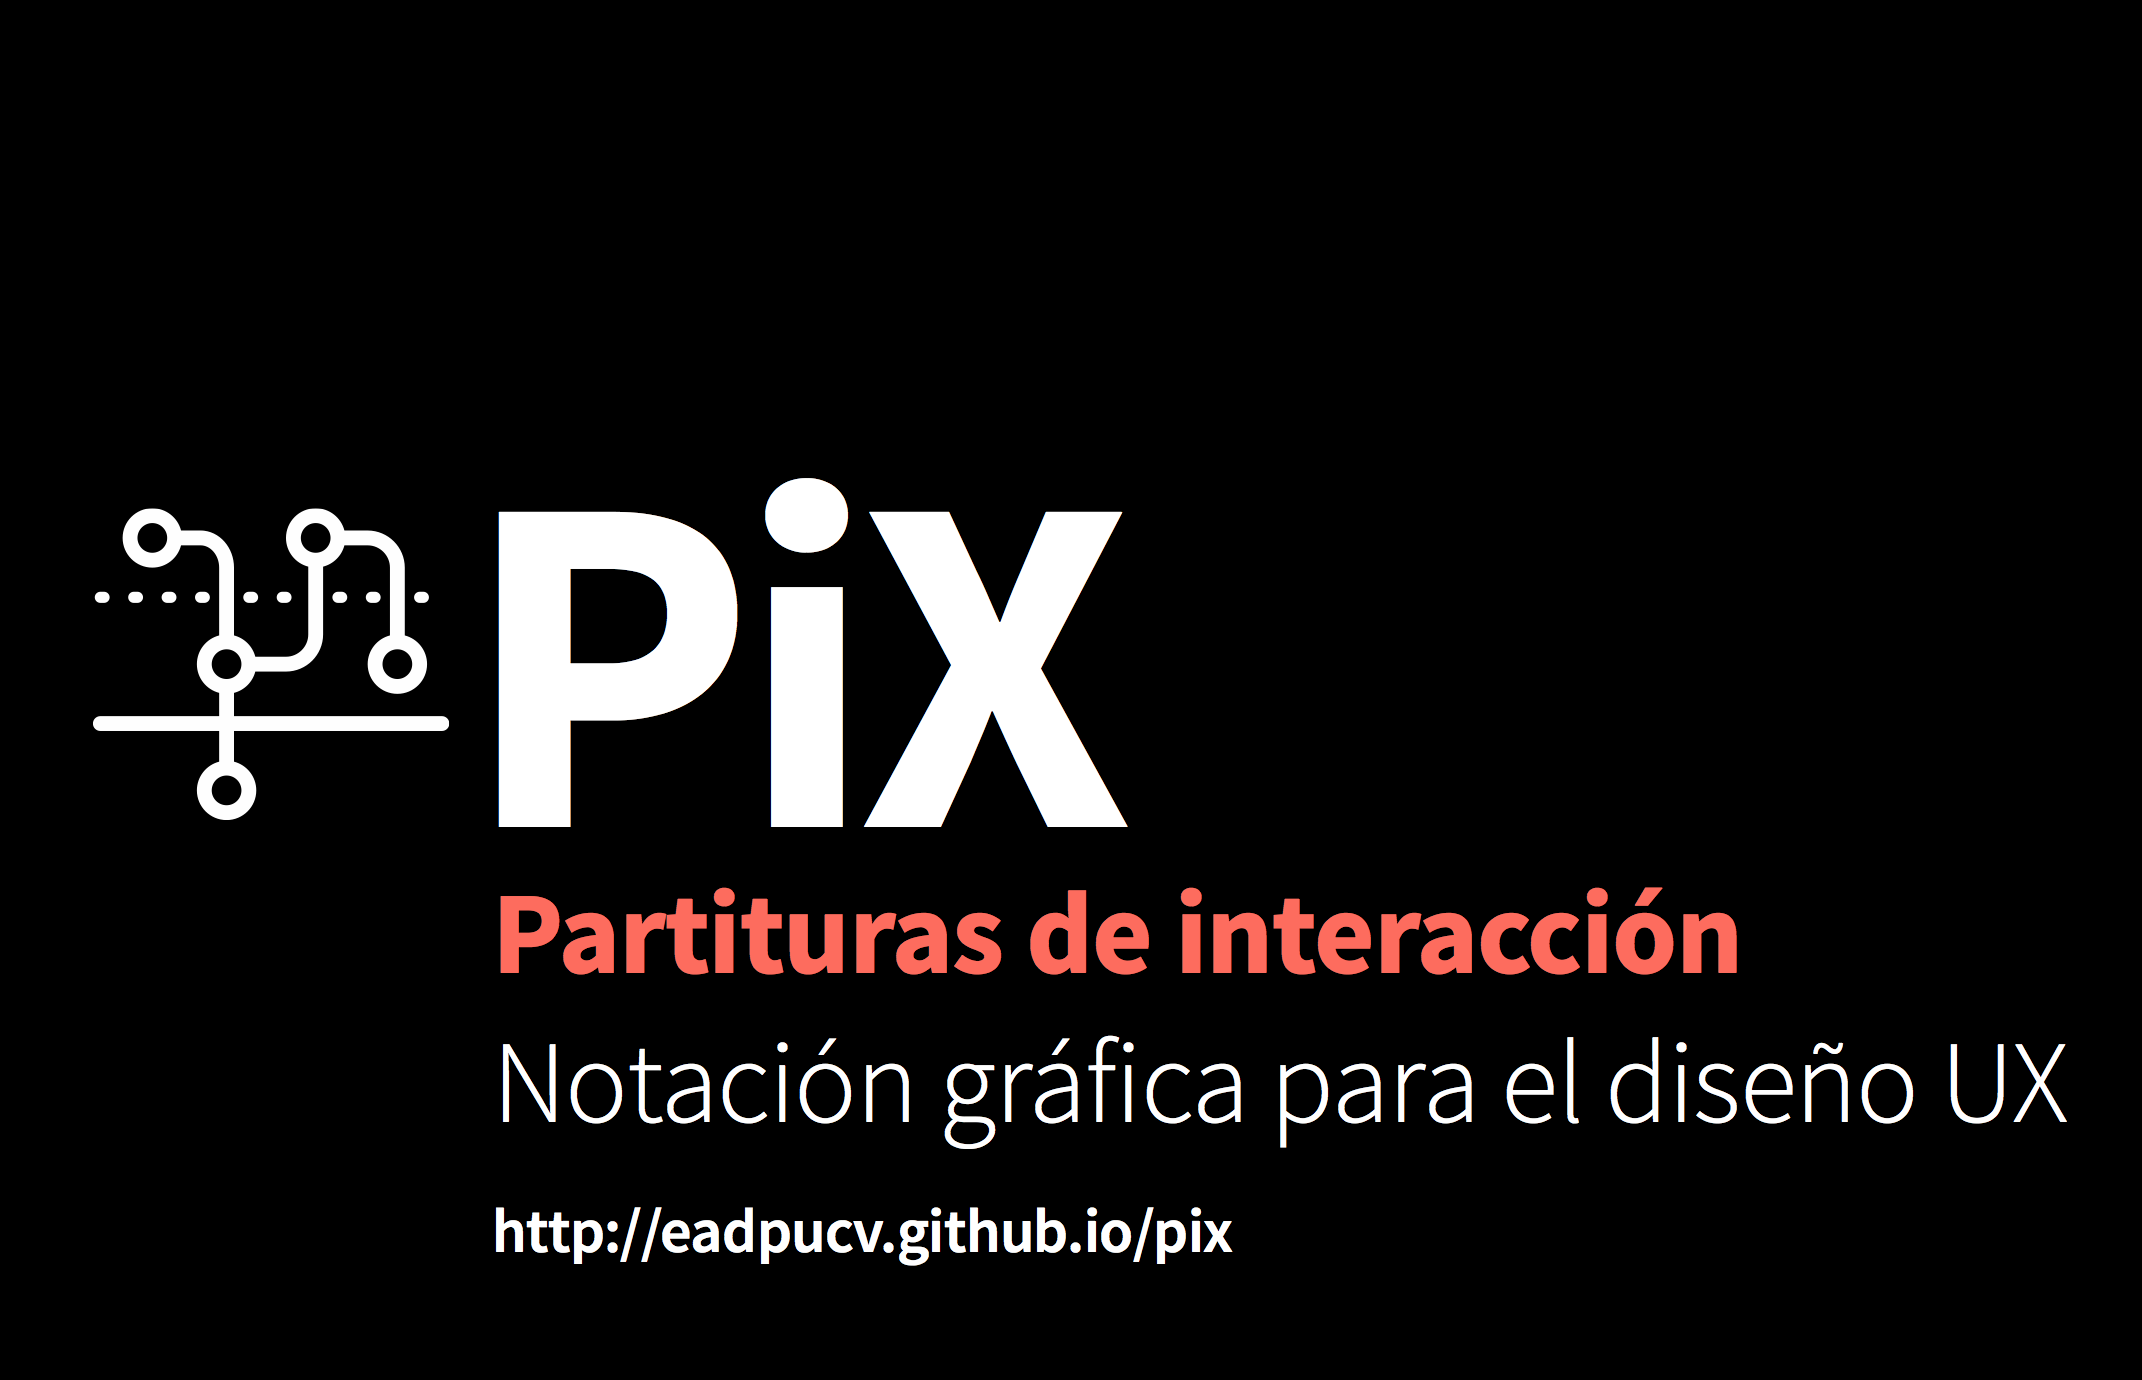 [PiX] Partituras de Interaccion